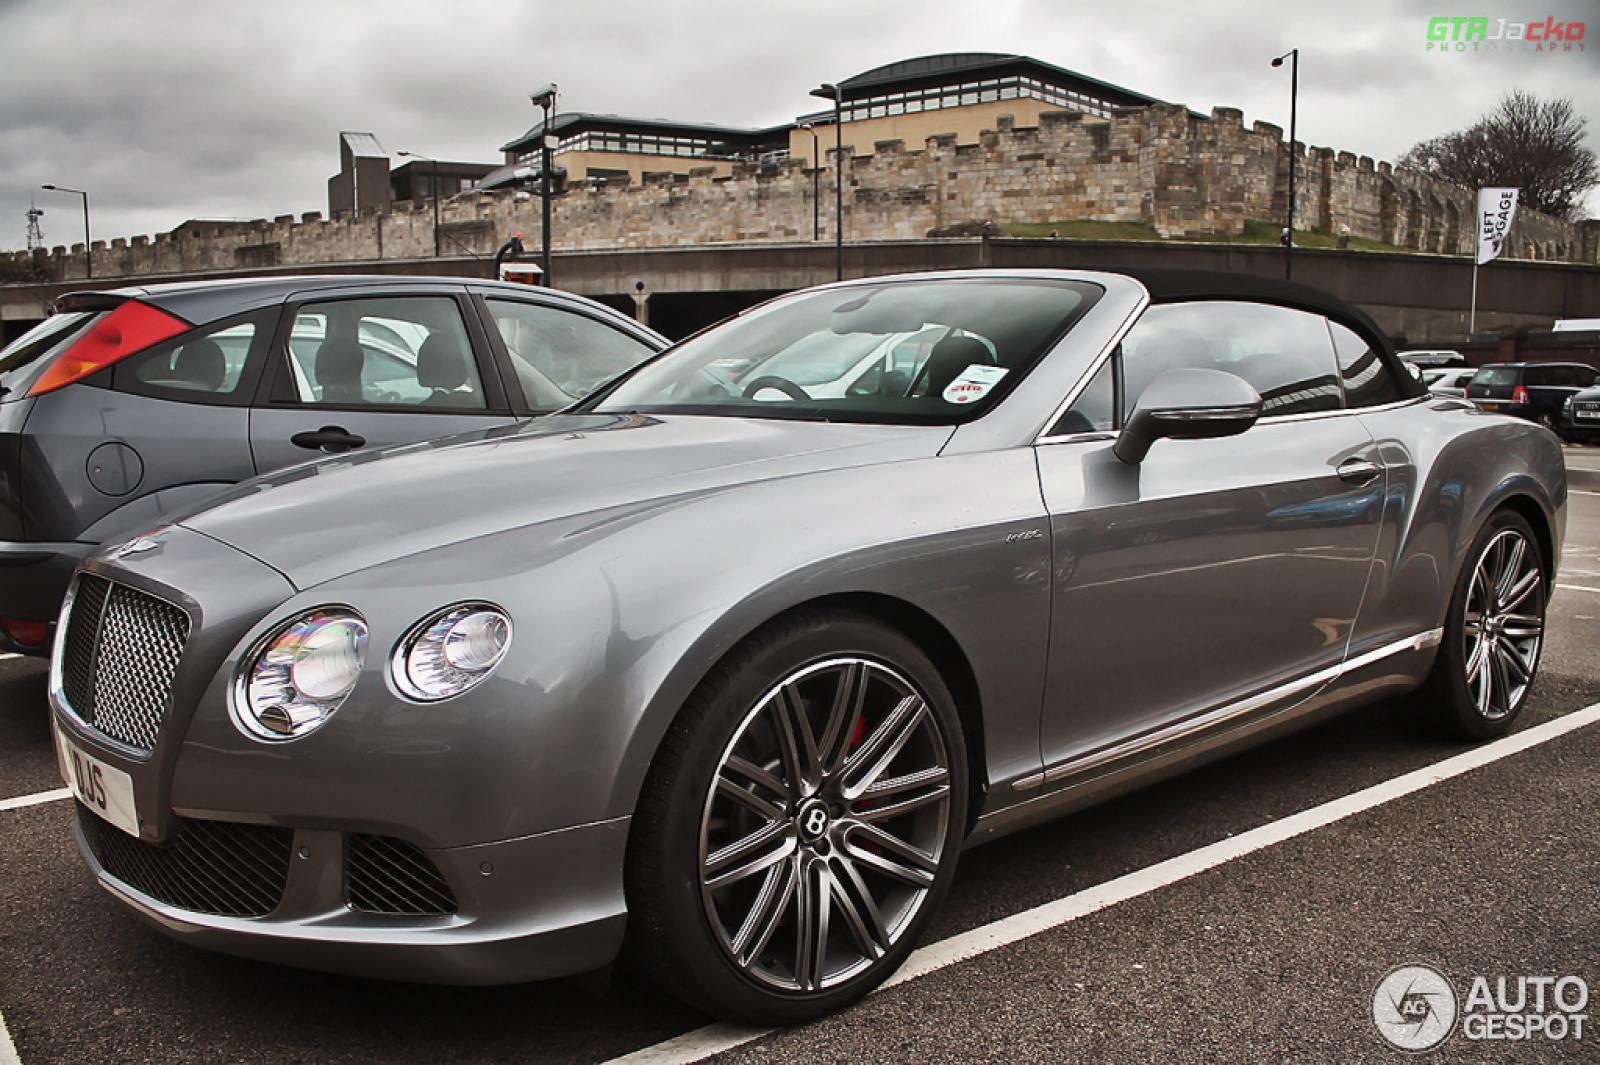 2010 bentley continental gtc speed information and photos bentley gallery 2010 bentley continental gtc speed 1 bentley continental gtc speed 1 2010 bentley continental gtc speed vanachro Image collections